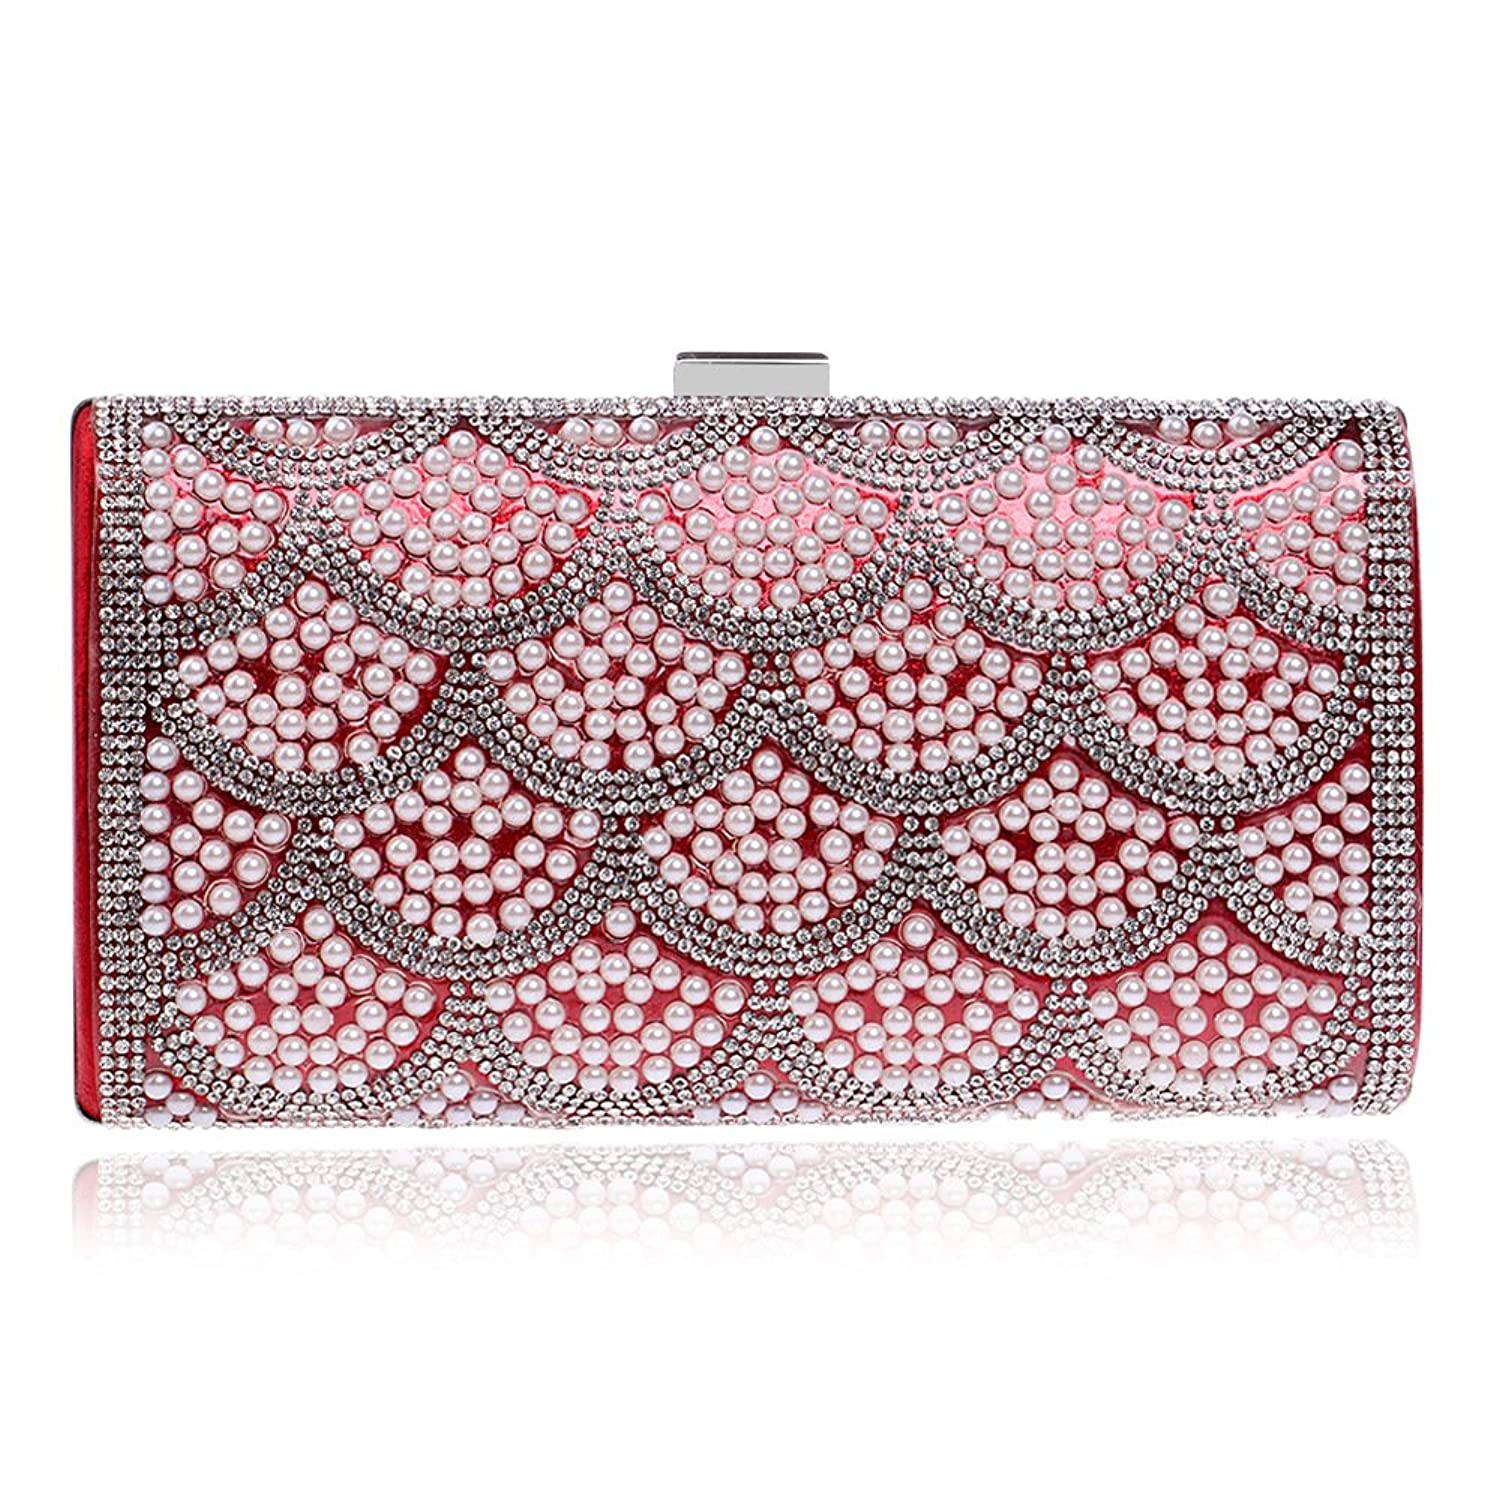 Ladies Red Evening Wedding Bride Bridal Beading Crystal Clutch Bag Party Prom Handbag